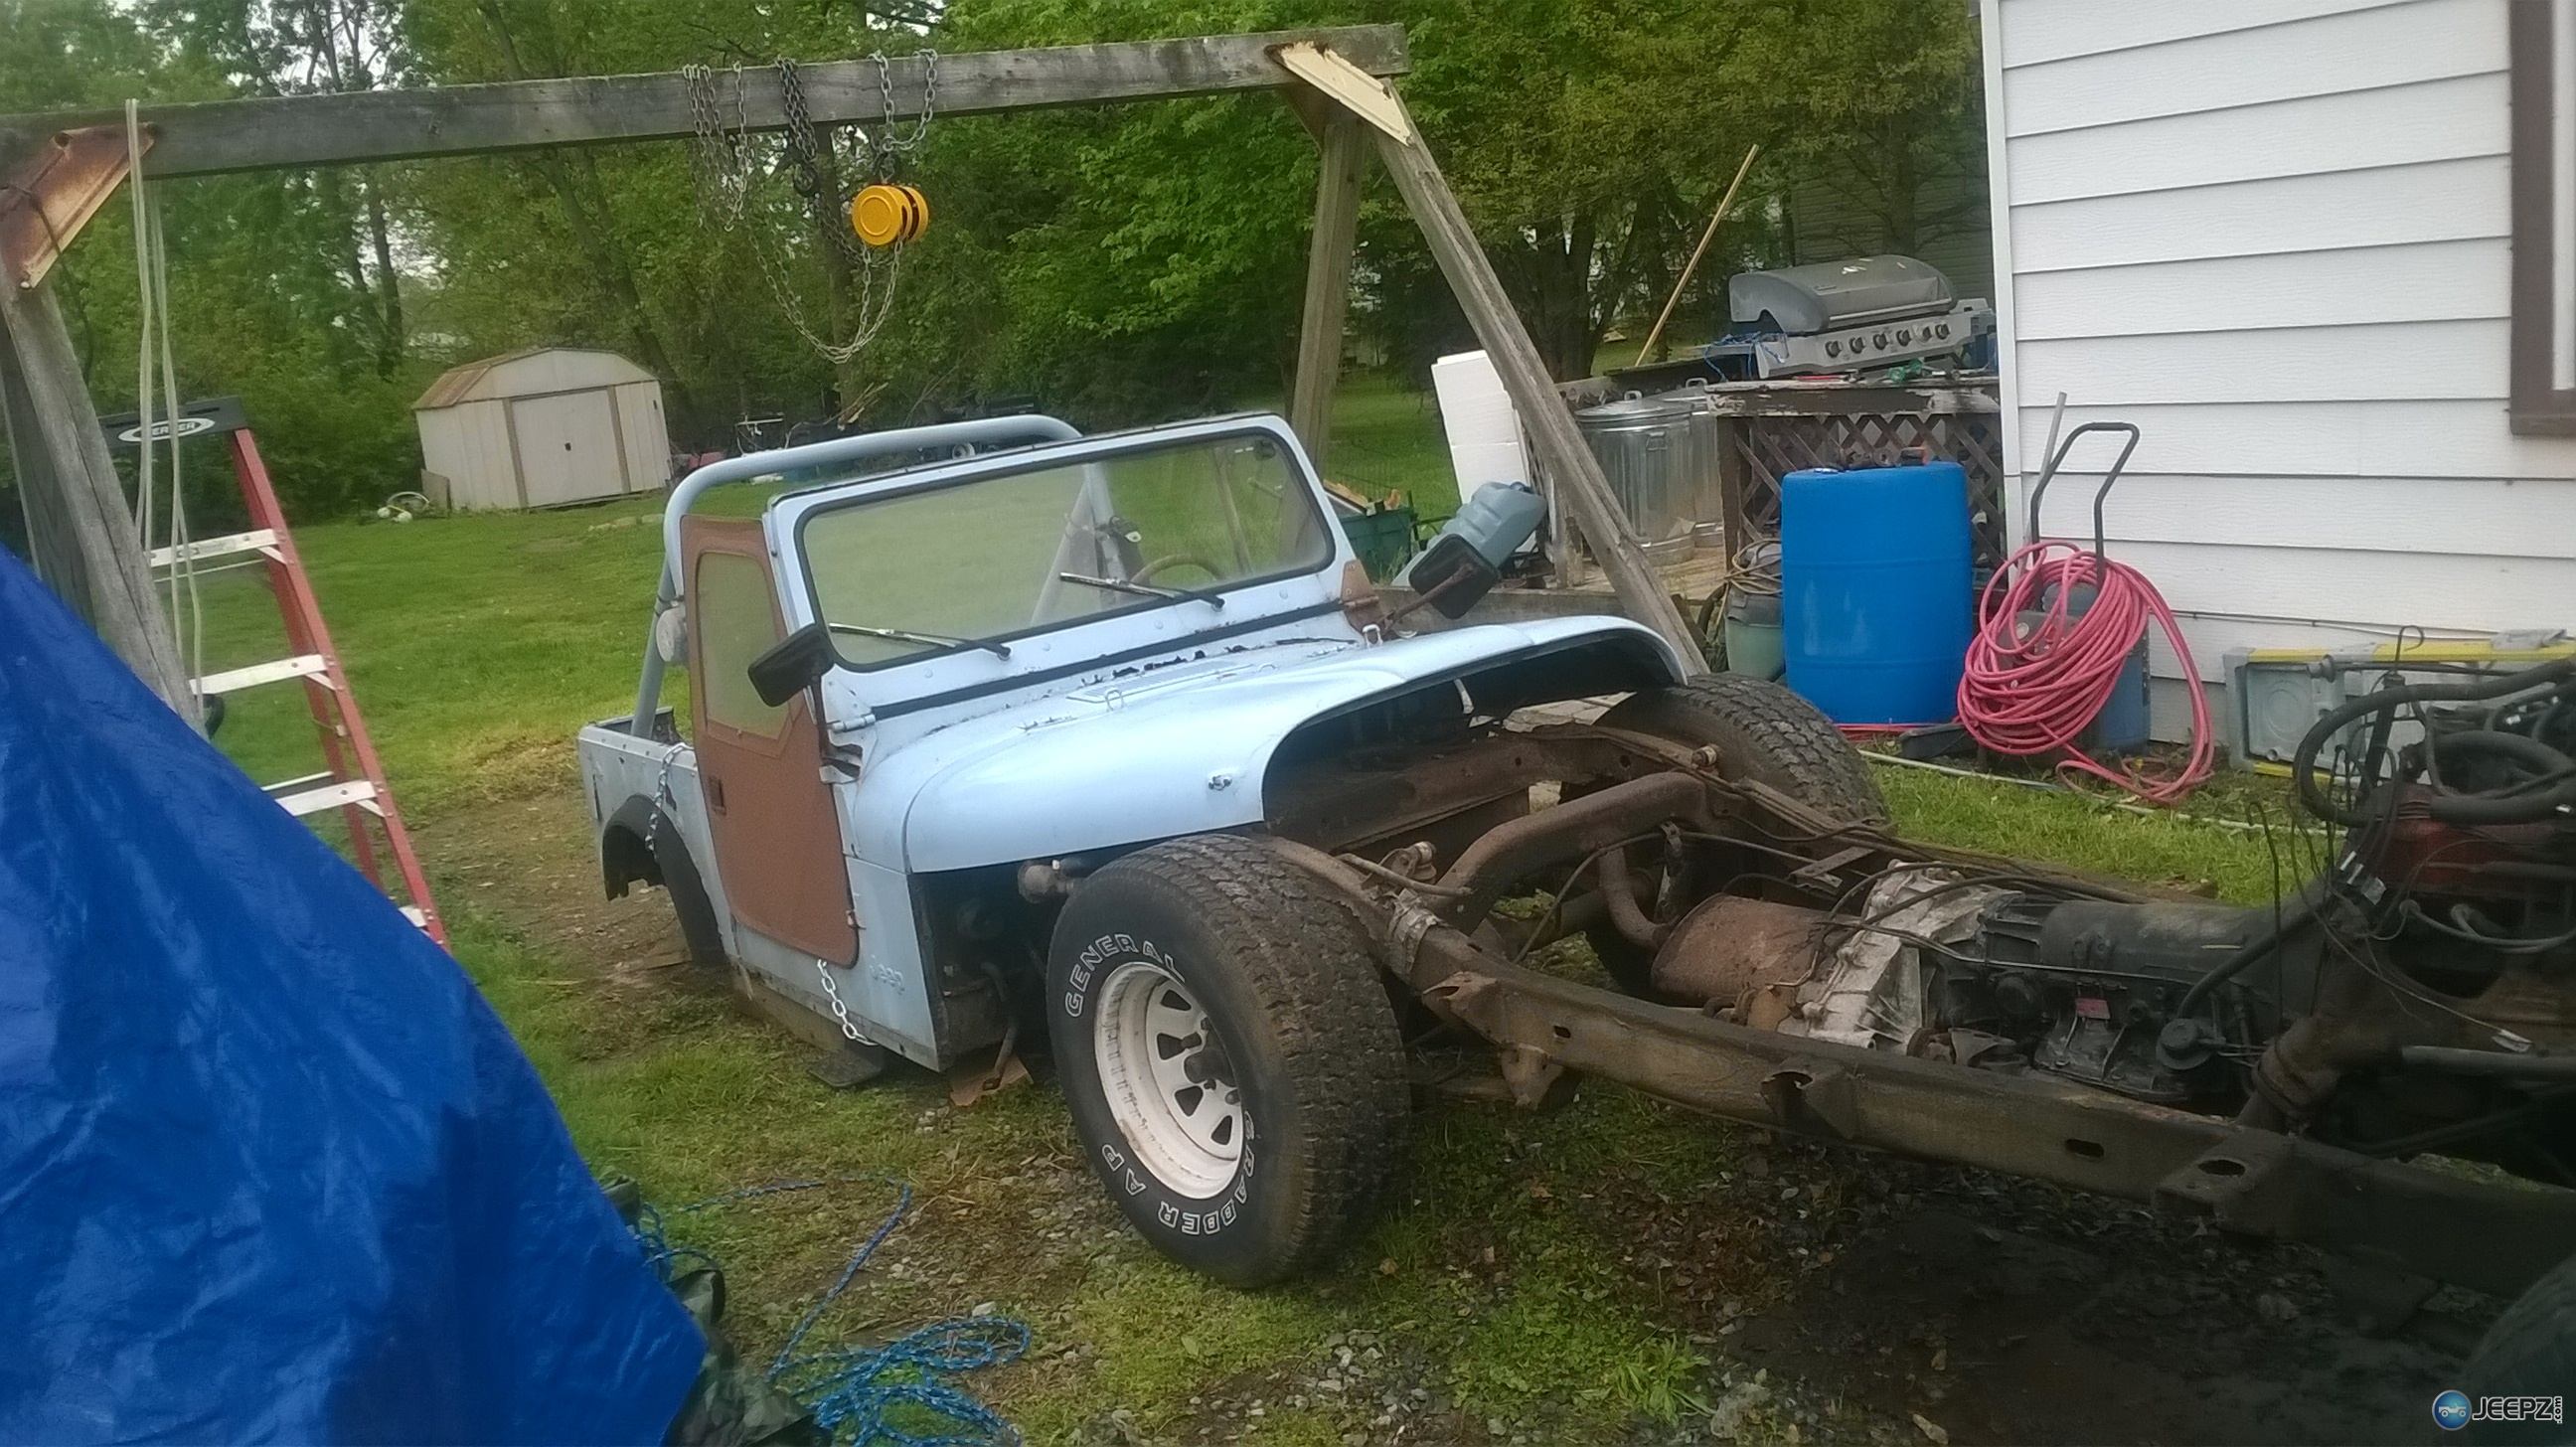 Bigdaddygb s 1979 jeep cj7 wp_20160502_008 jpg